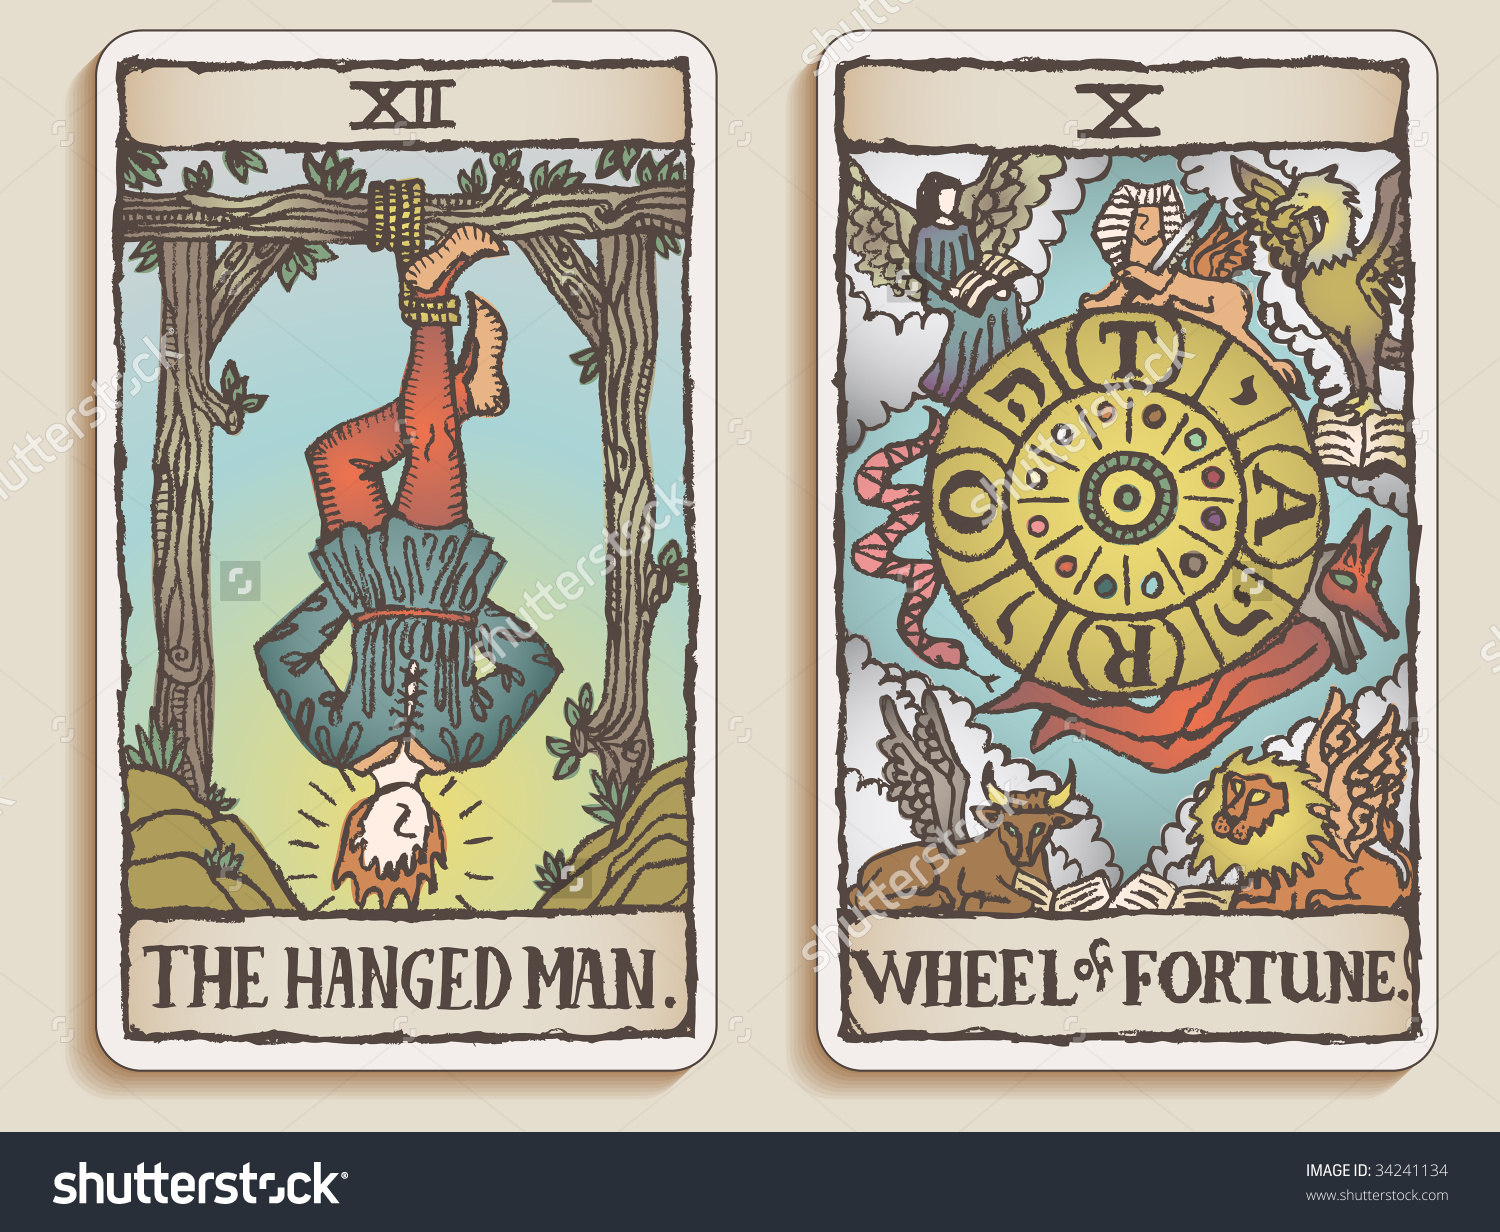 Tarotcards clipart hand drawn Fortitude cards textured Tarot hand